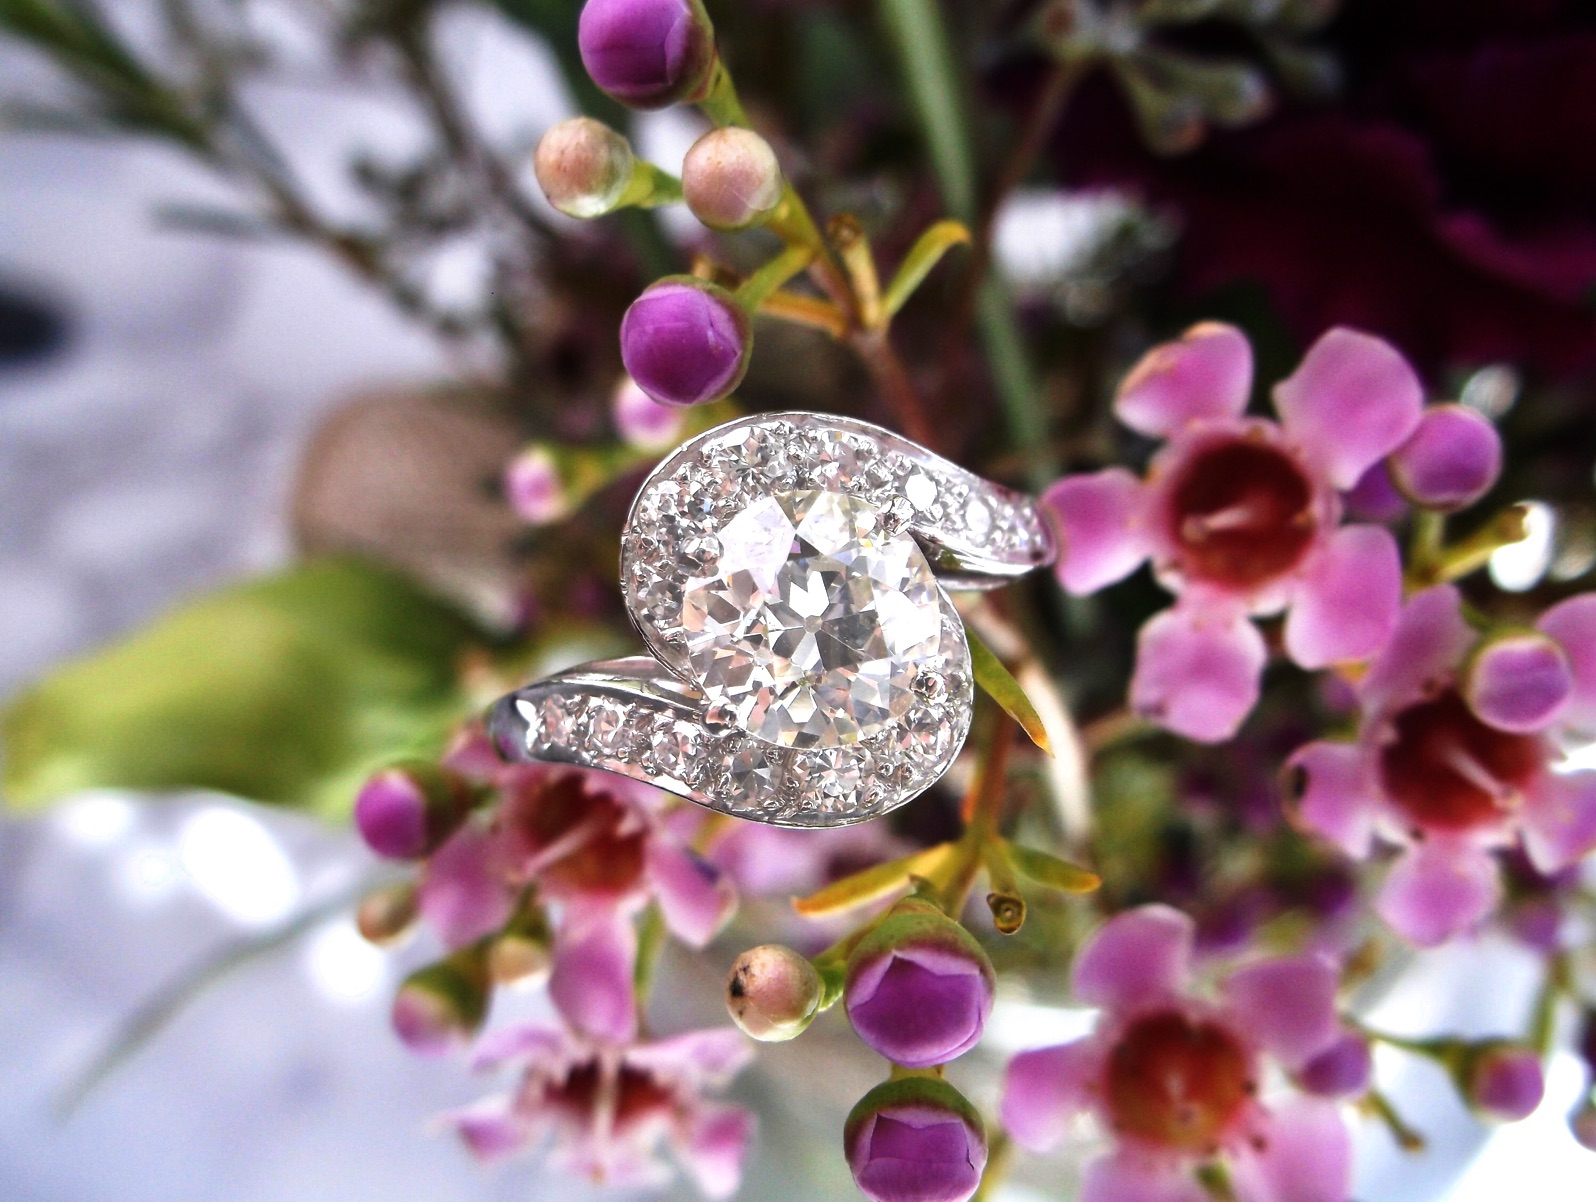 In a field of flowers, we'd definitely pick this one! Shop this 1.24 carat Old European cut diamond beauty  HERE .